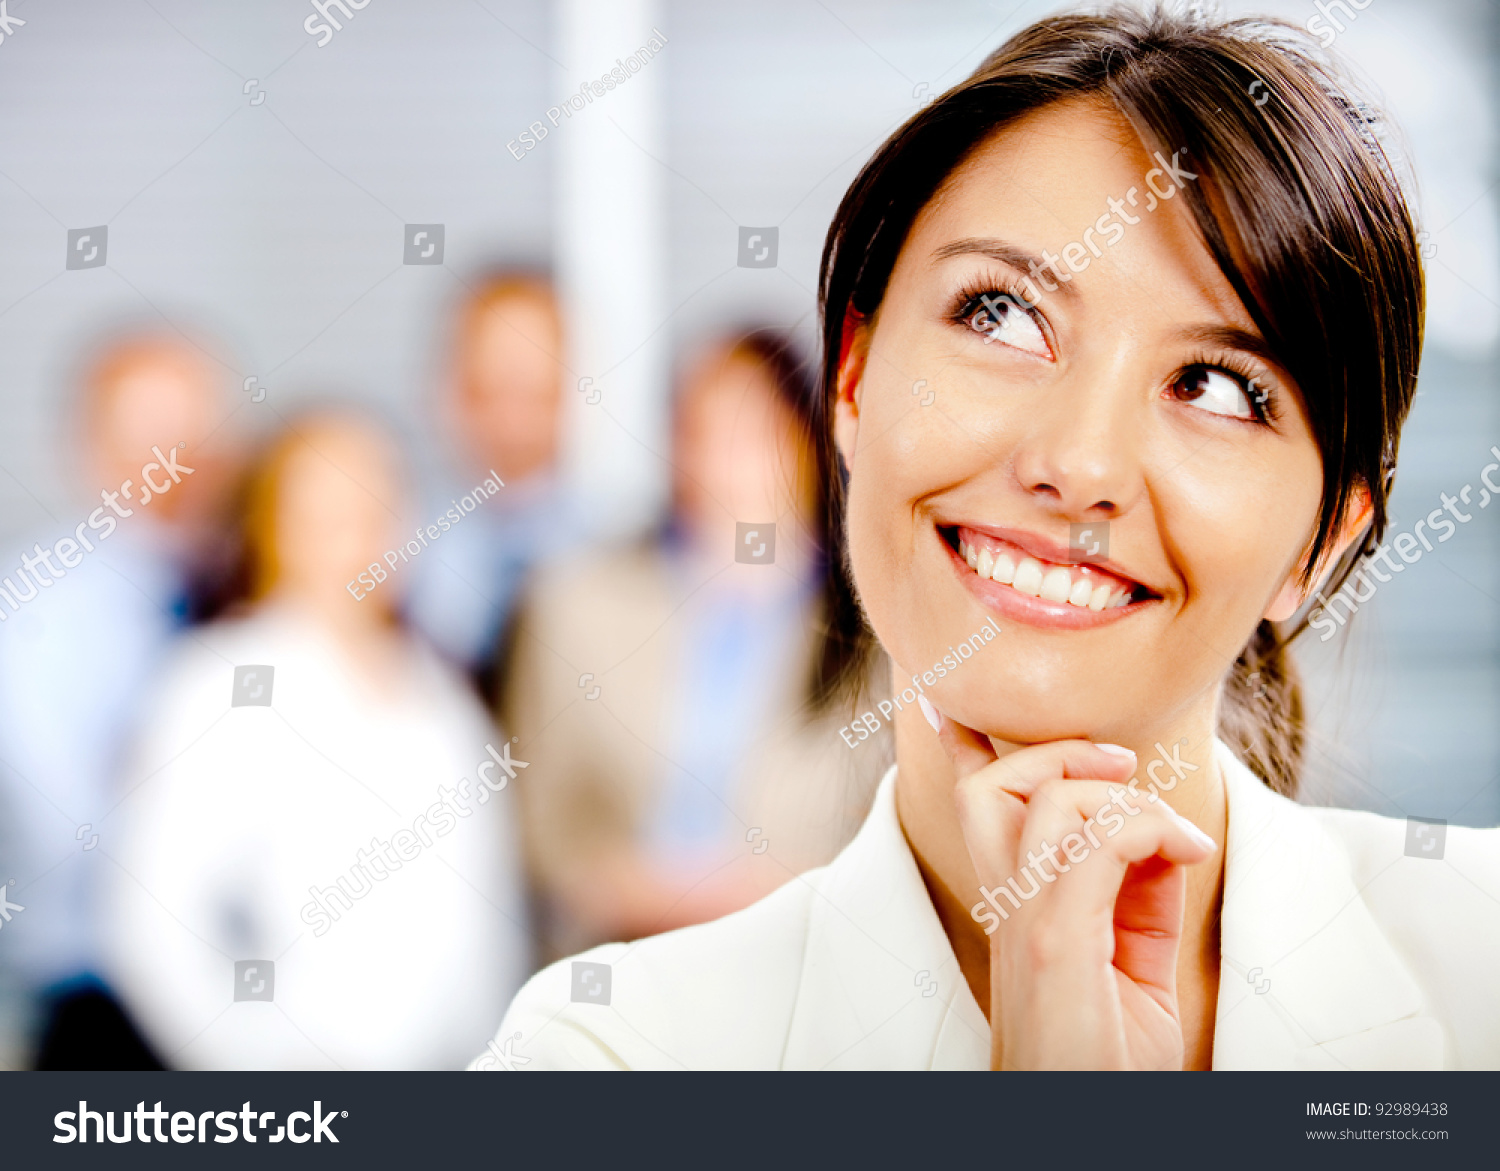 Portrait thoughtful business woman office stock photo 92989438 shutterstock - Office portrait photography ...